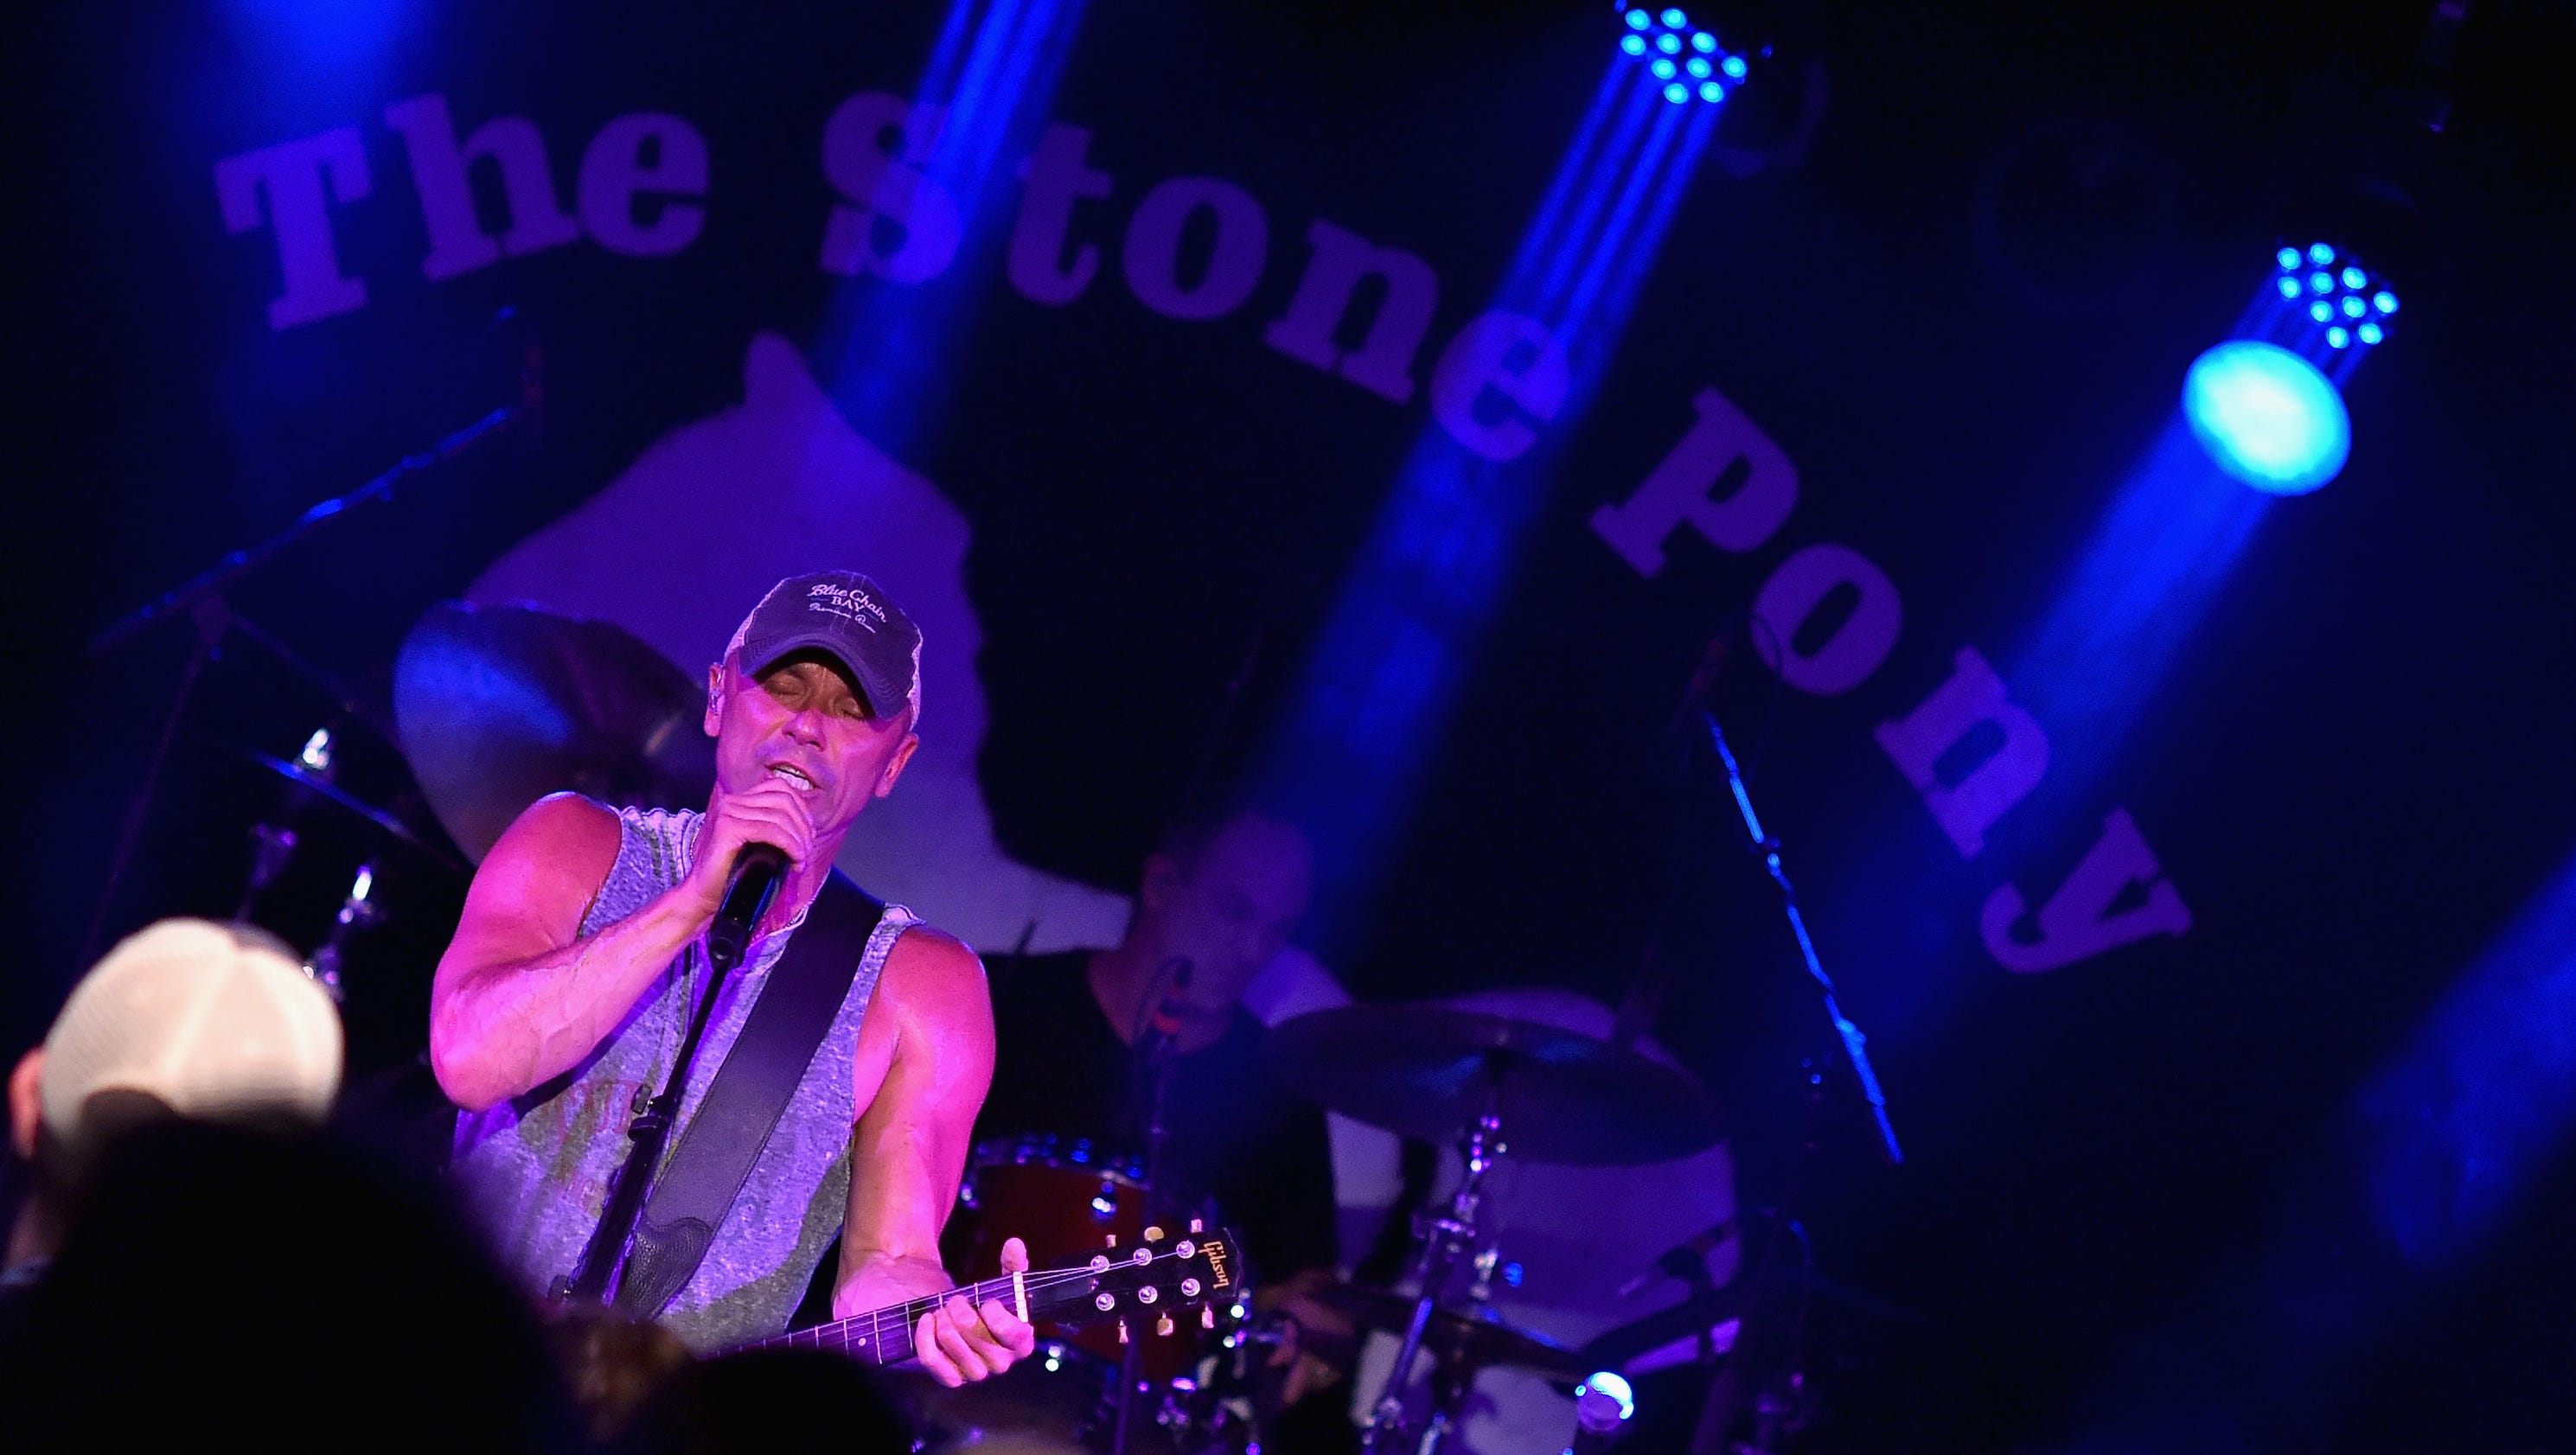 Kenny chesney at the pony greetings from asbury park m4hsunfo Gallery